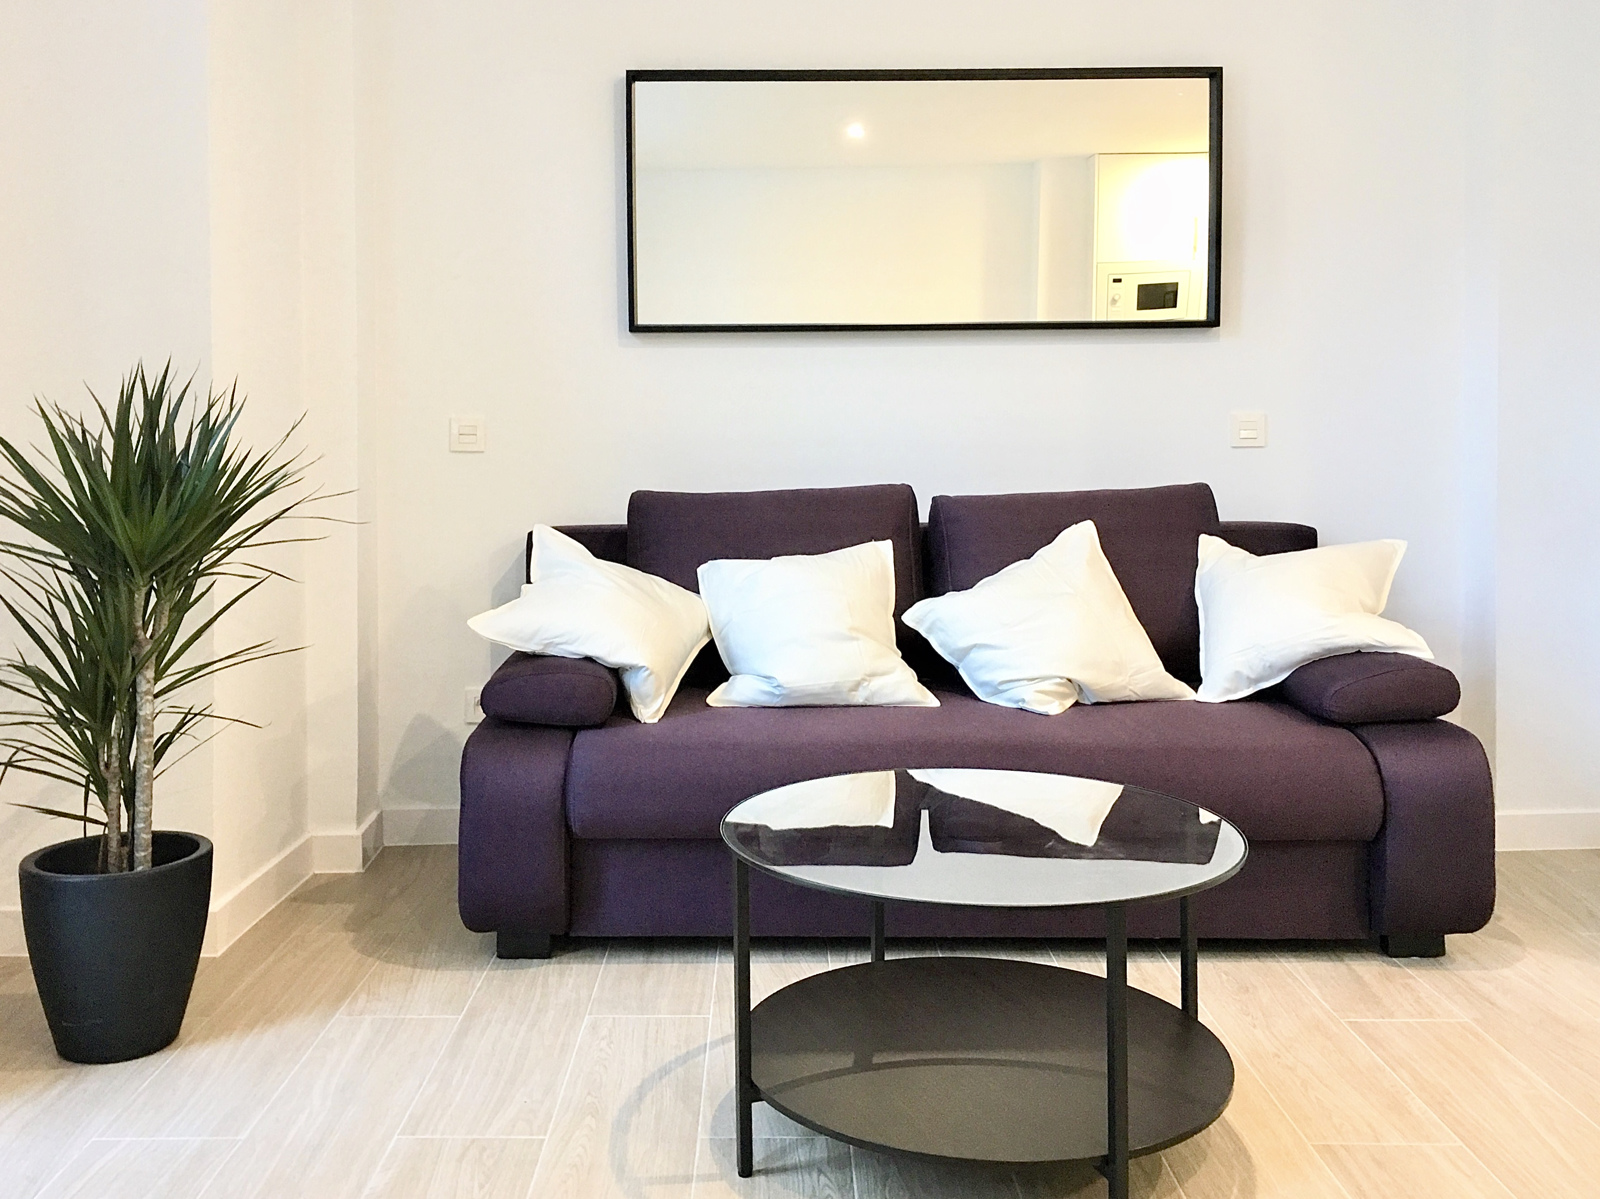 Holiday rental apartaments in Málaga. Apartments in the city center and El Palo beach. The best location in Málaga. - Picacho Atico